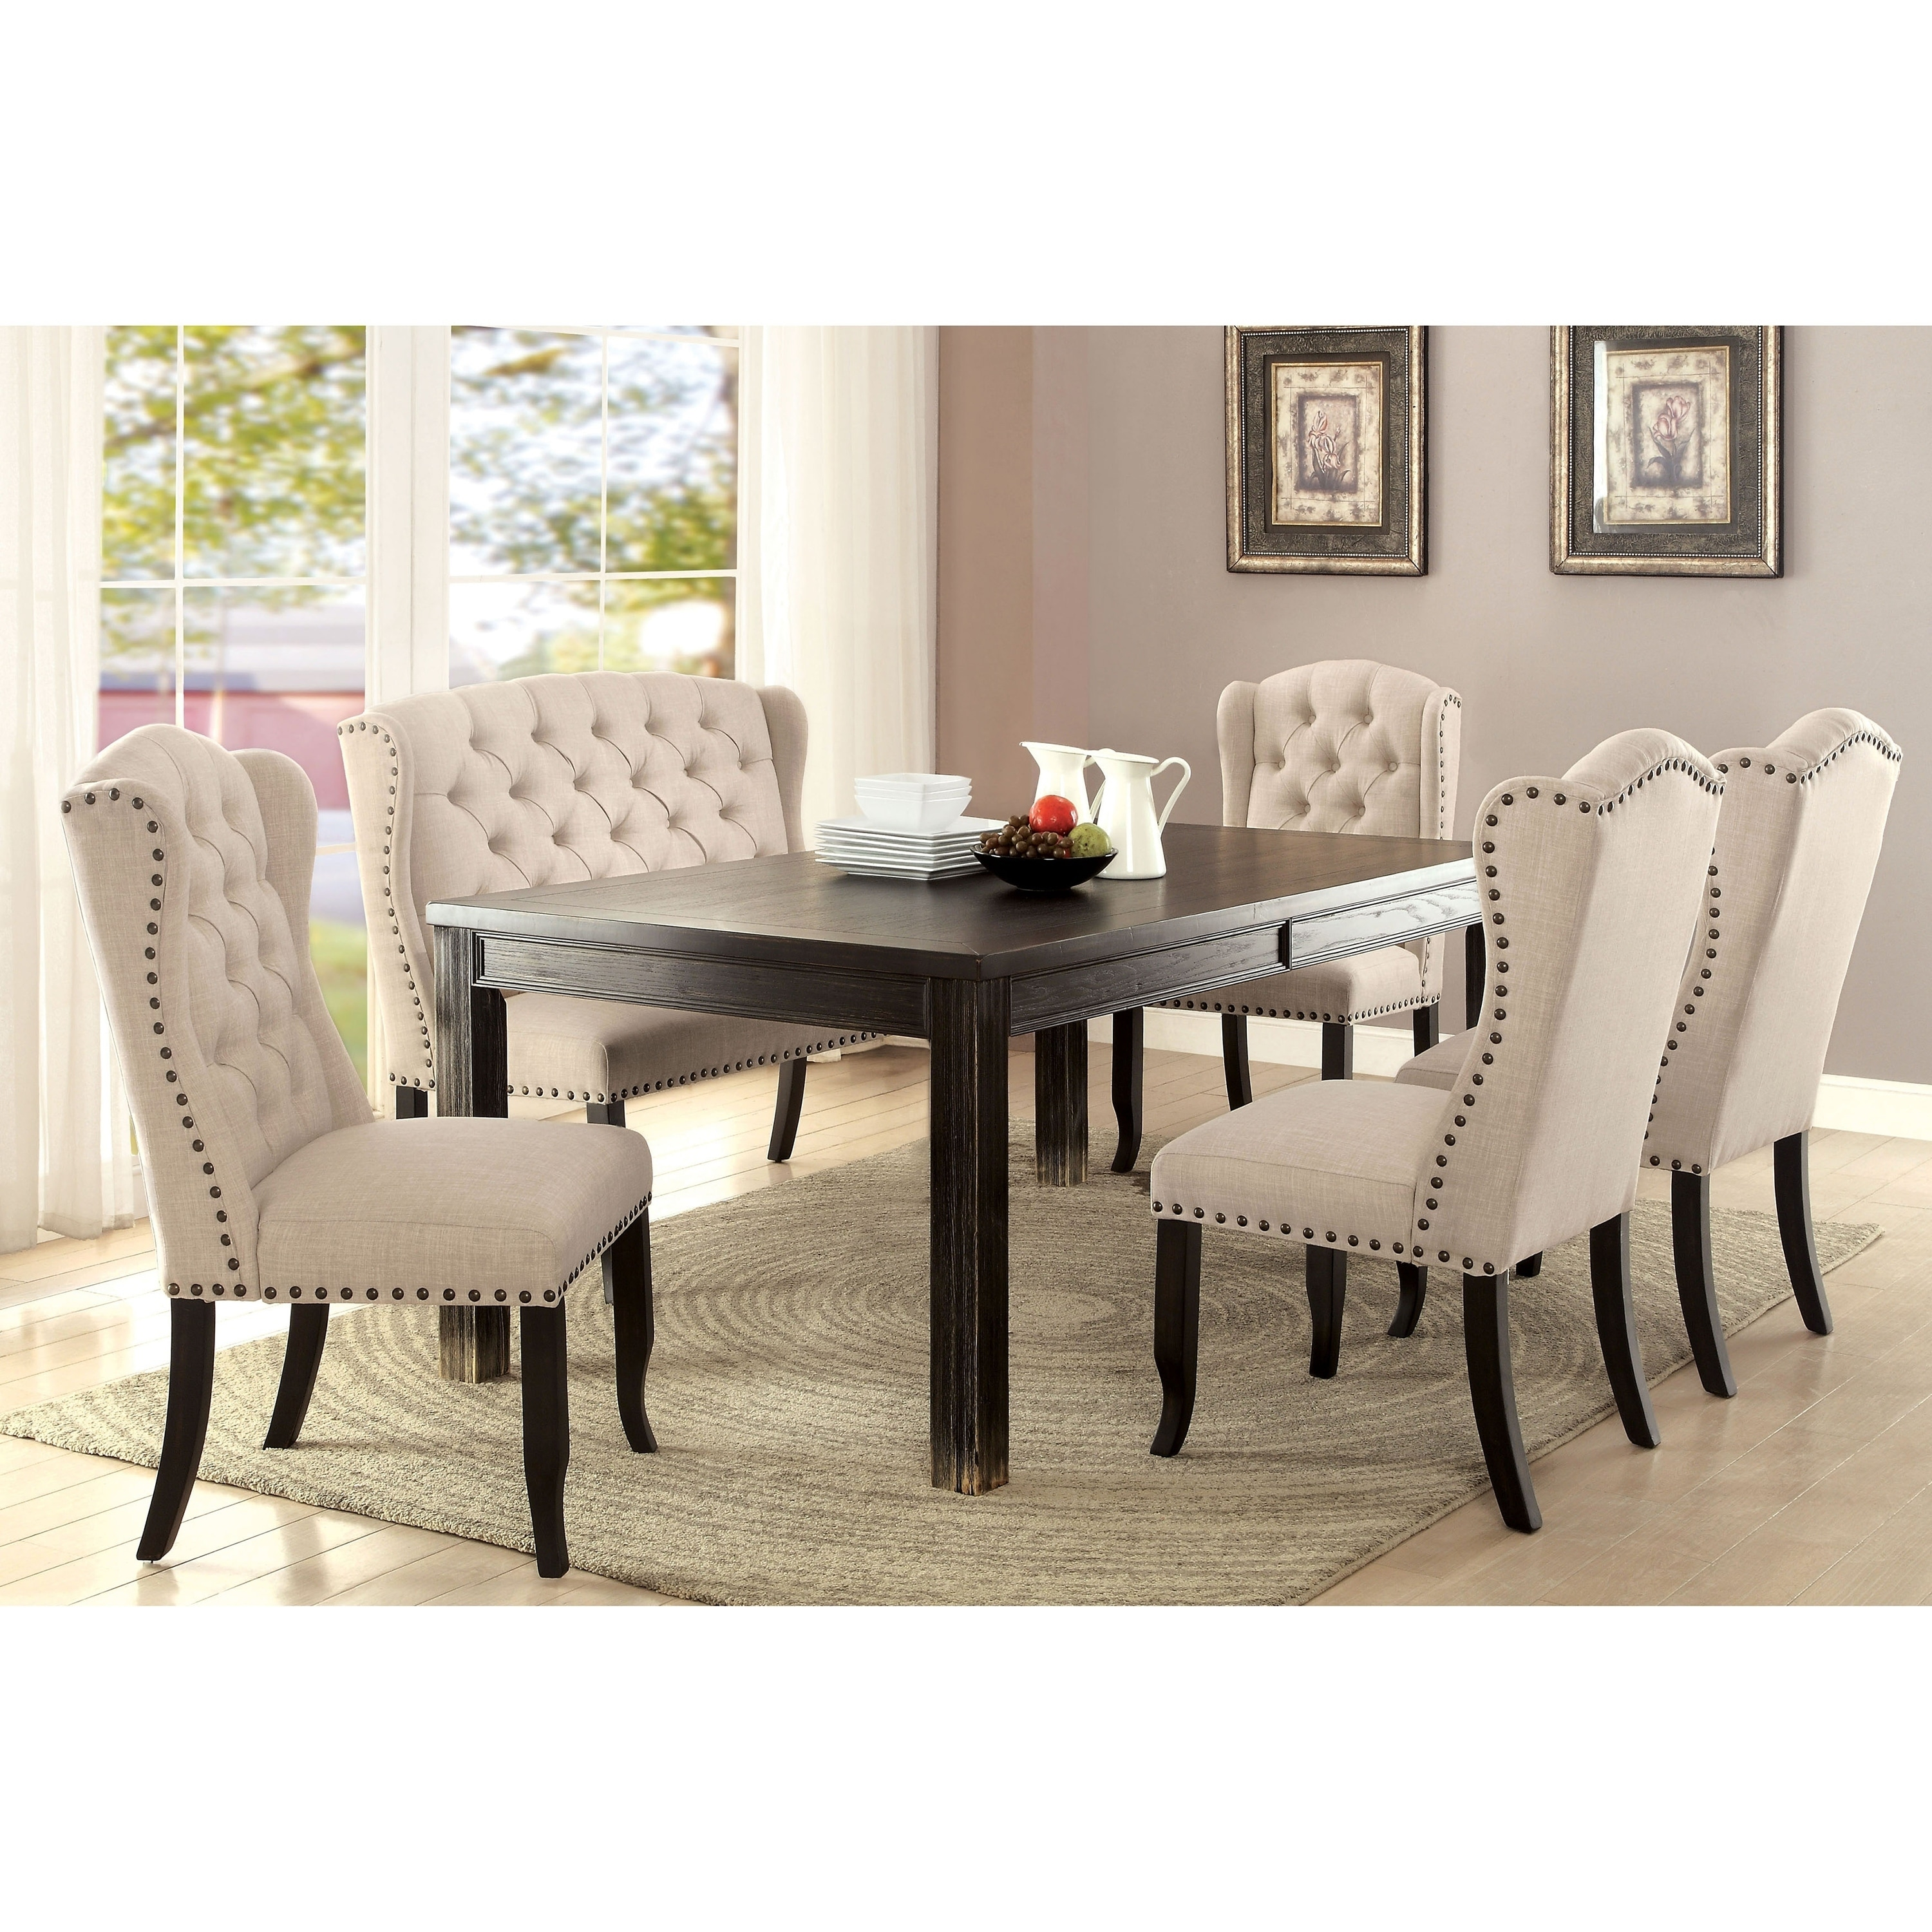 Furniture Of America Foster Rustic Beige Linen 6 Piece Dining Table Set With Bench Black Black Dining Room Dining Room Sets Dining Table Black